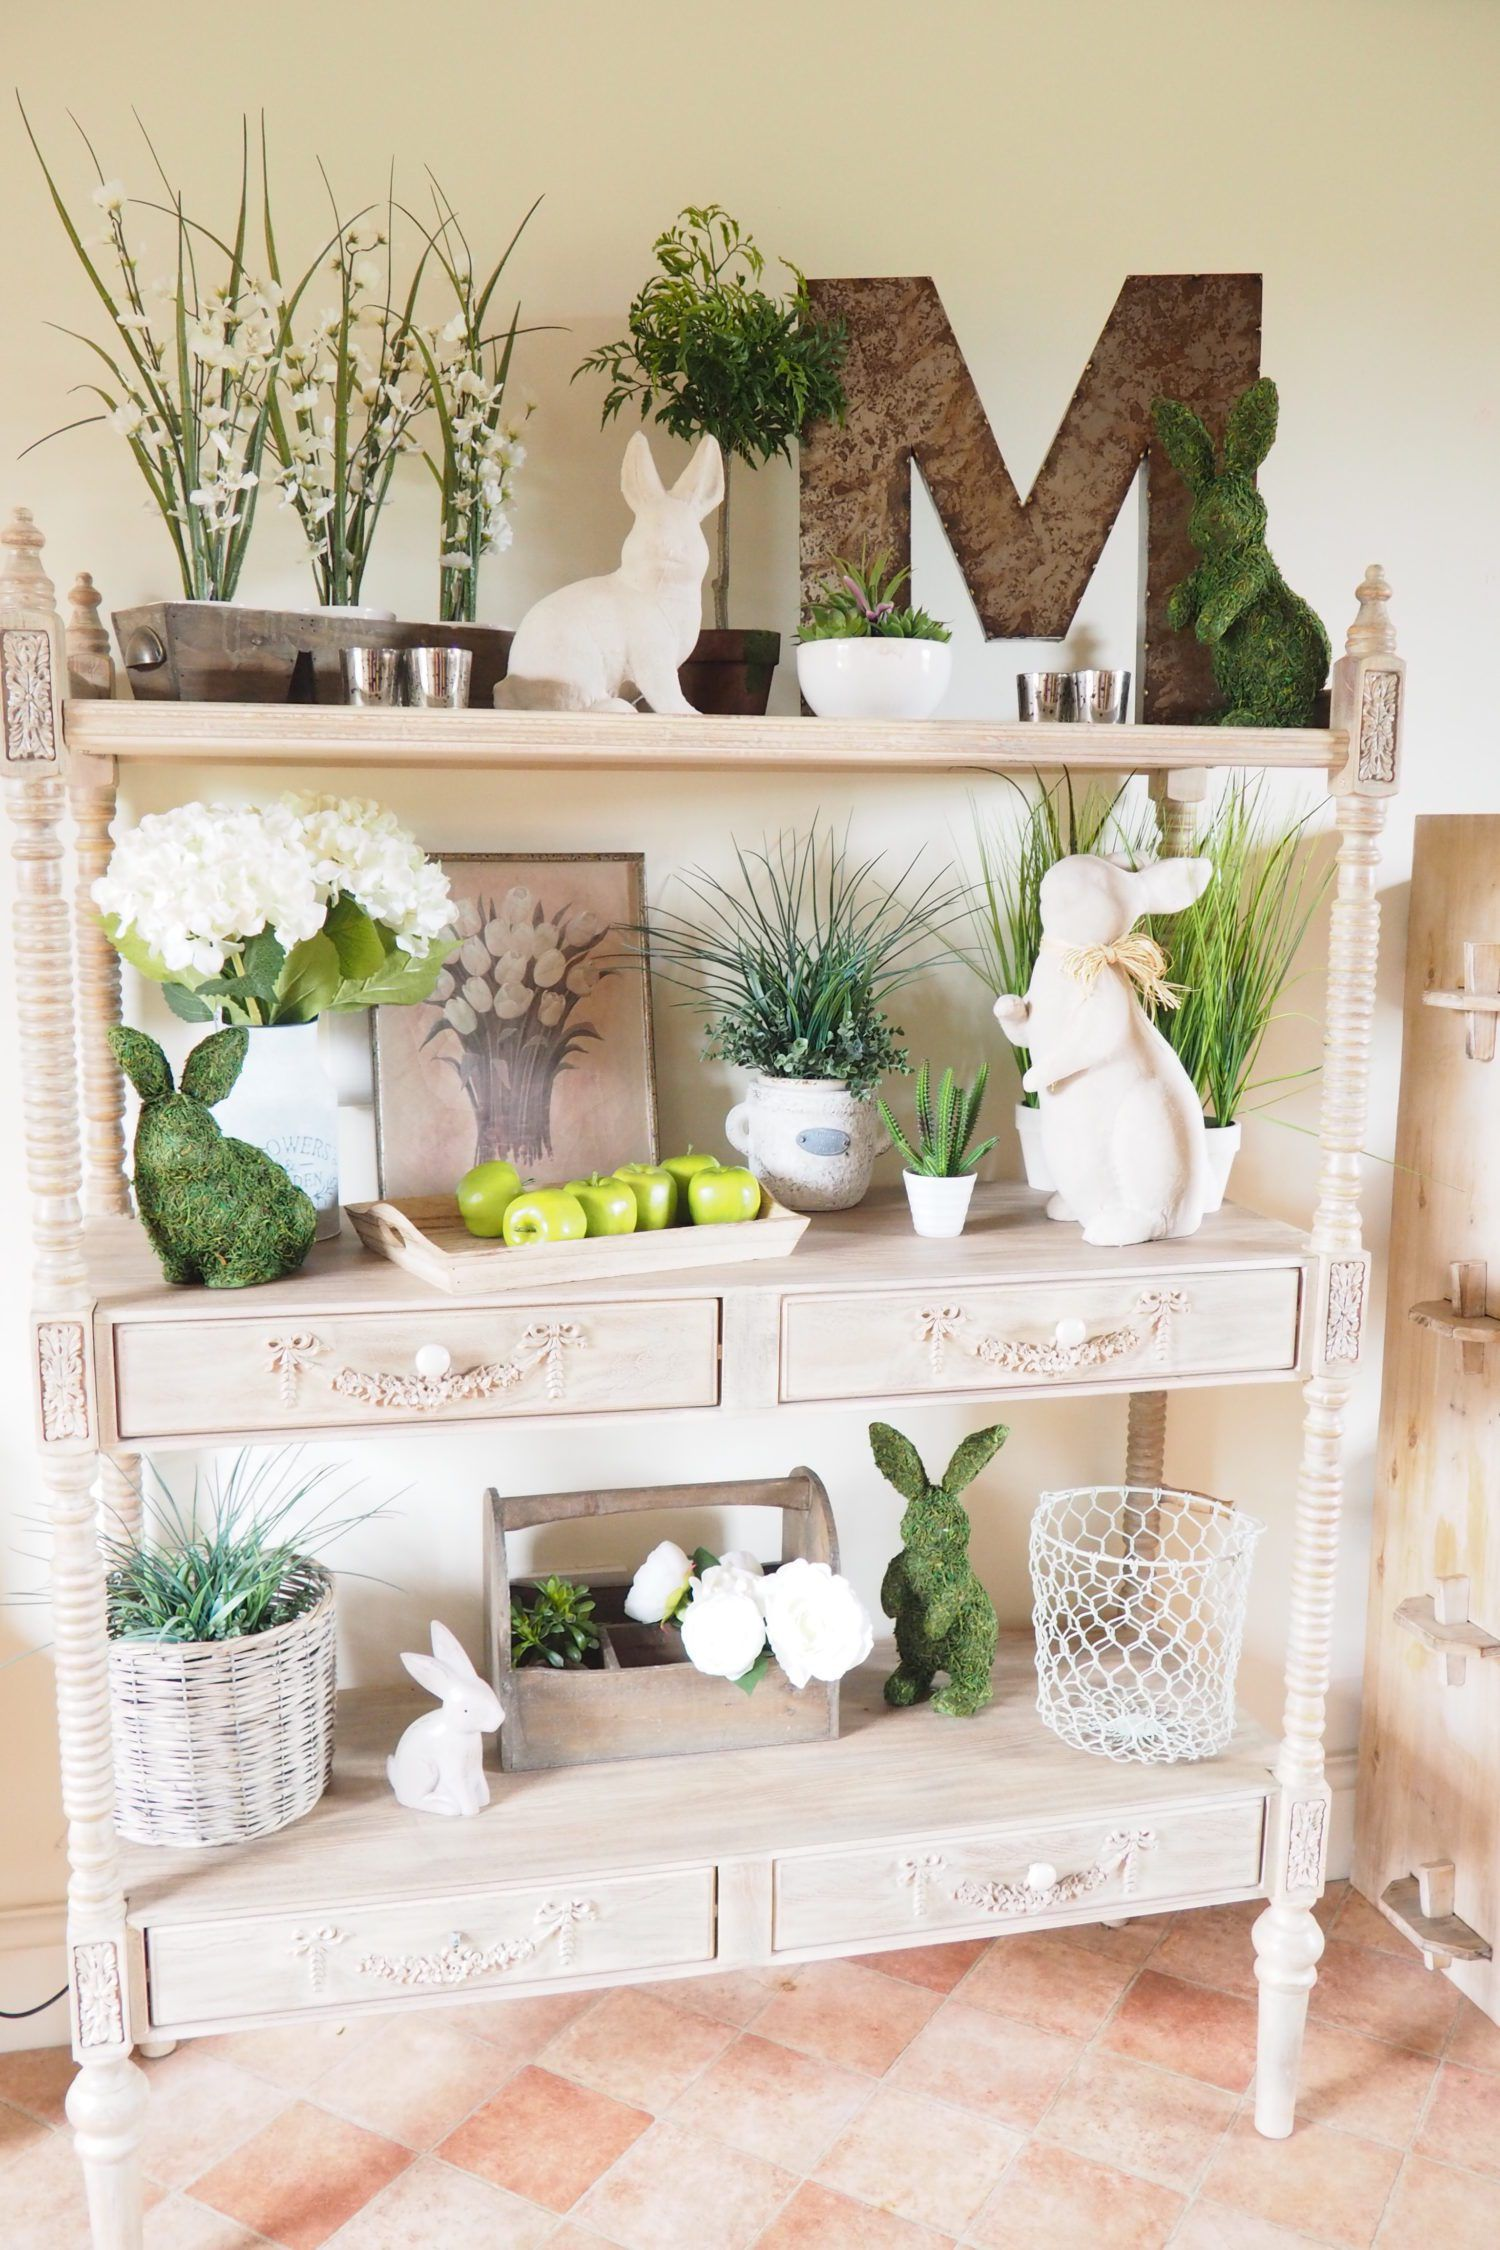 Casa Decoración Hogar Spring Easter Display Ideas Pascua Maravillosa En 2019